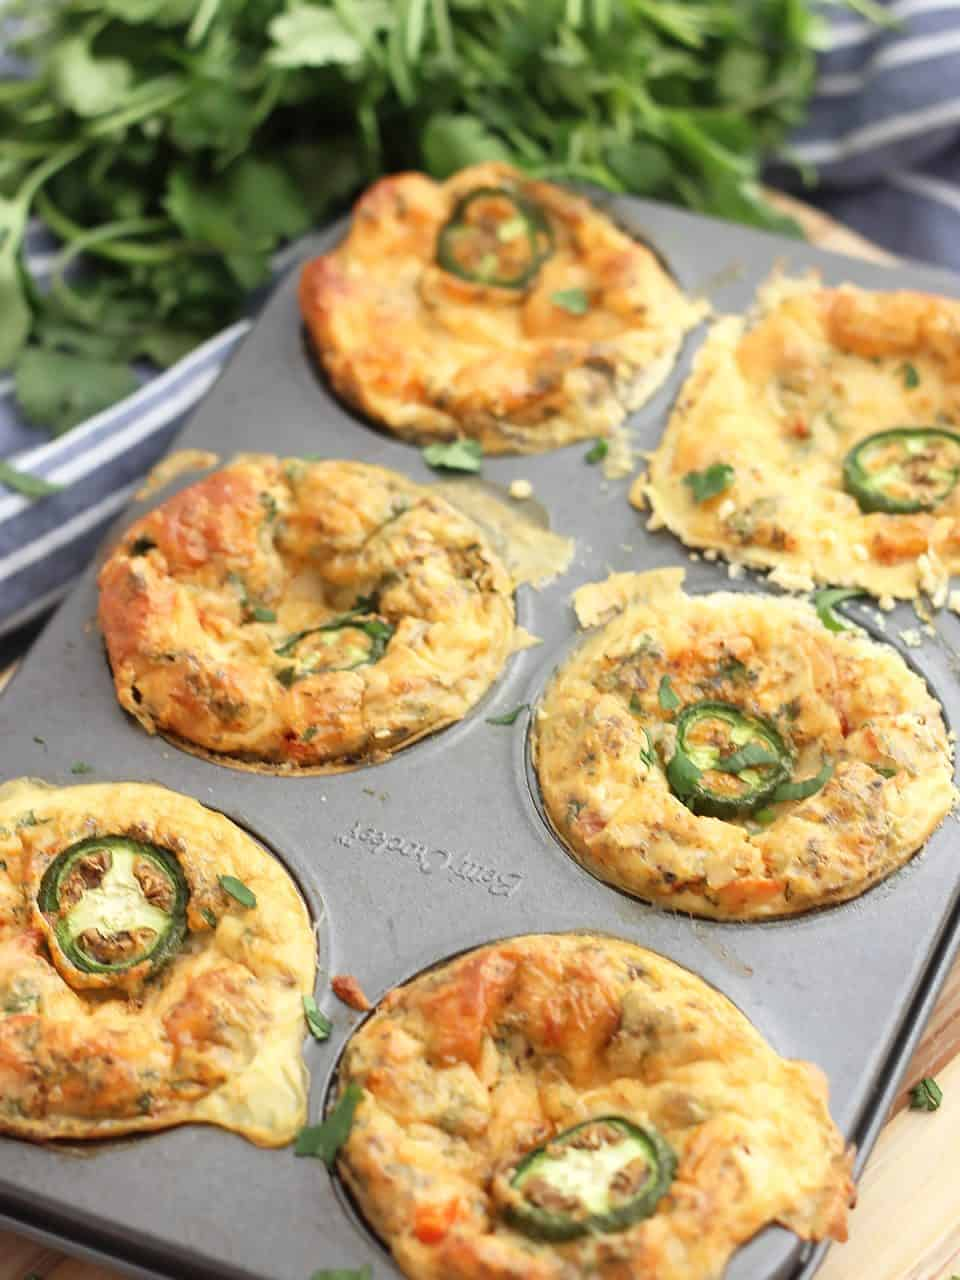 Baked egg bites in a muffin tin ready to serve.